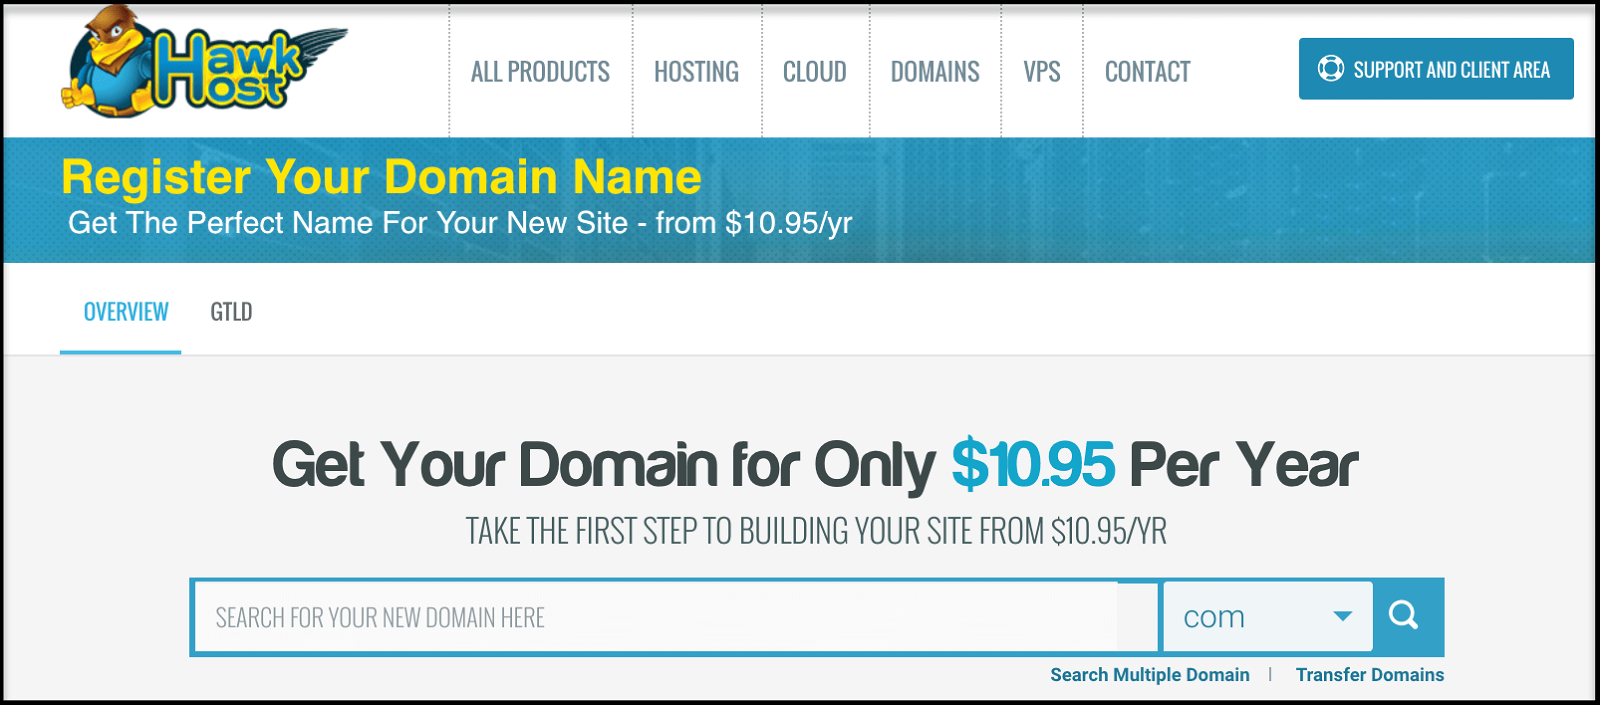 1631492974_570_6-Best-Domain-Registrars-that-Accept-Bitcoin-and-Altcoins